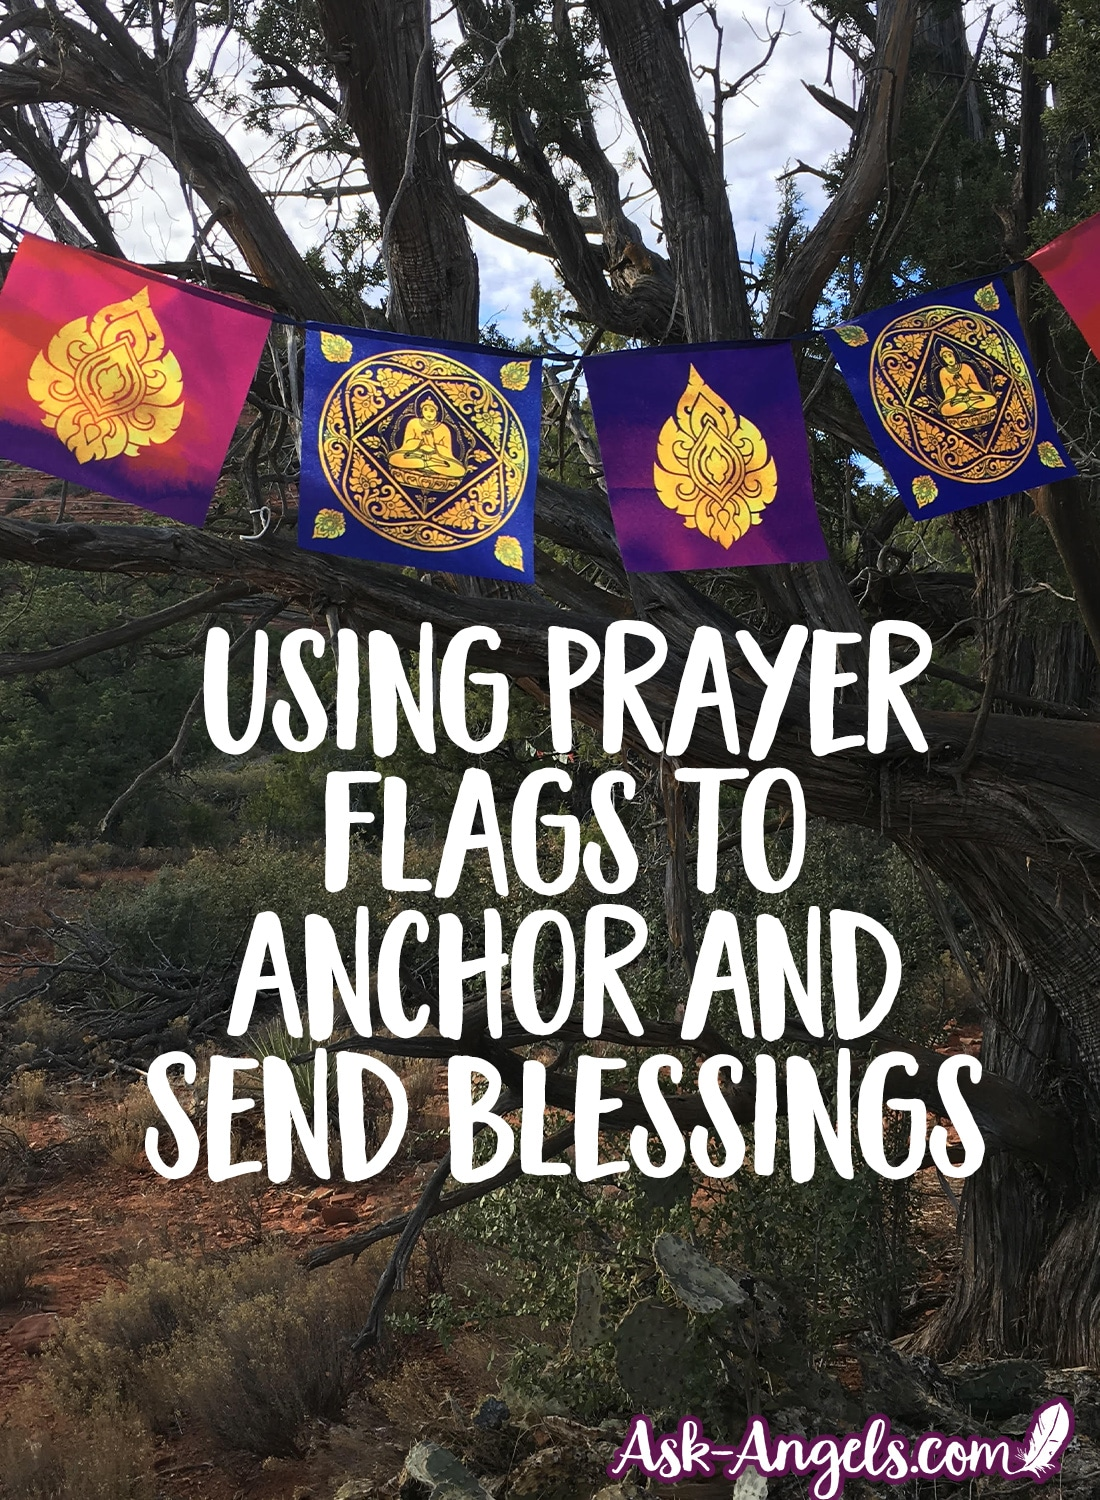 Using Prayer Flags to Send Blessings